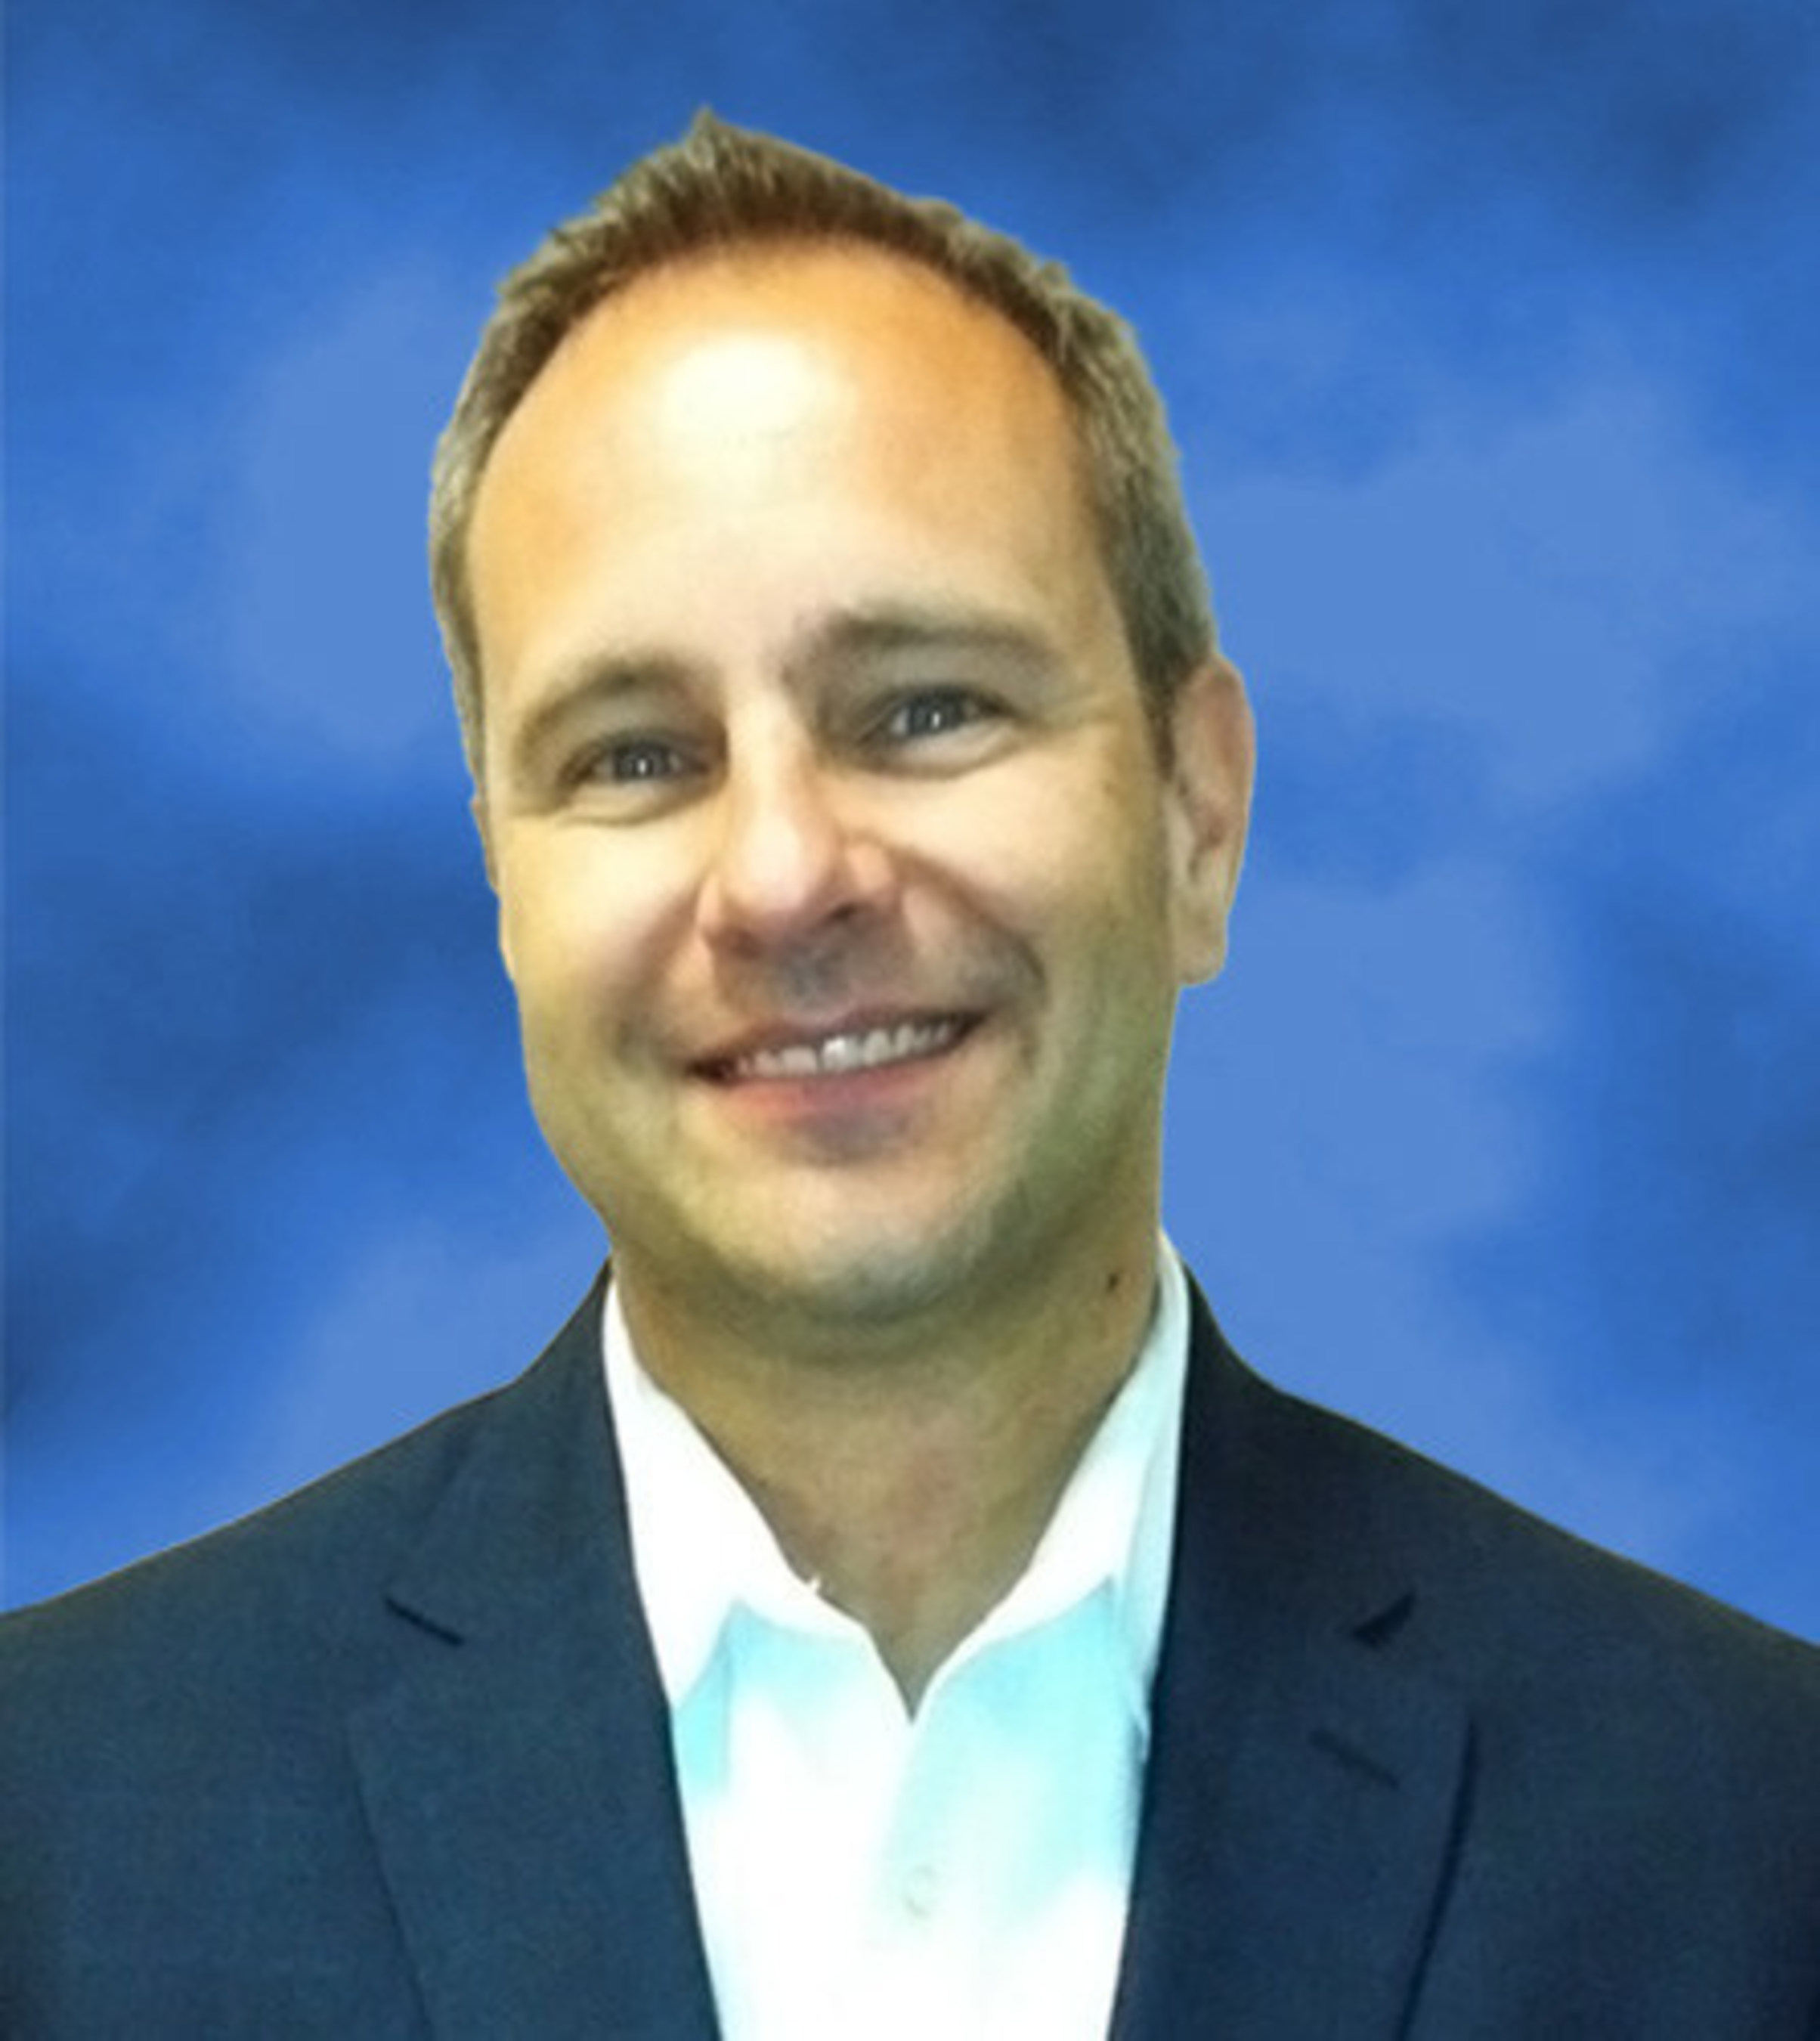 DataX, A Leading Data Services And Credit Reporting Bureau, Appoints Jon Geidel As President